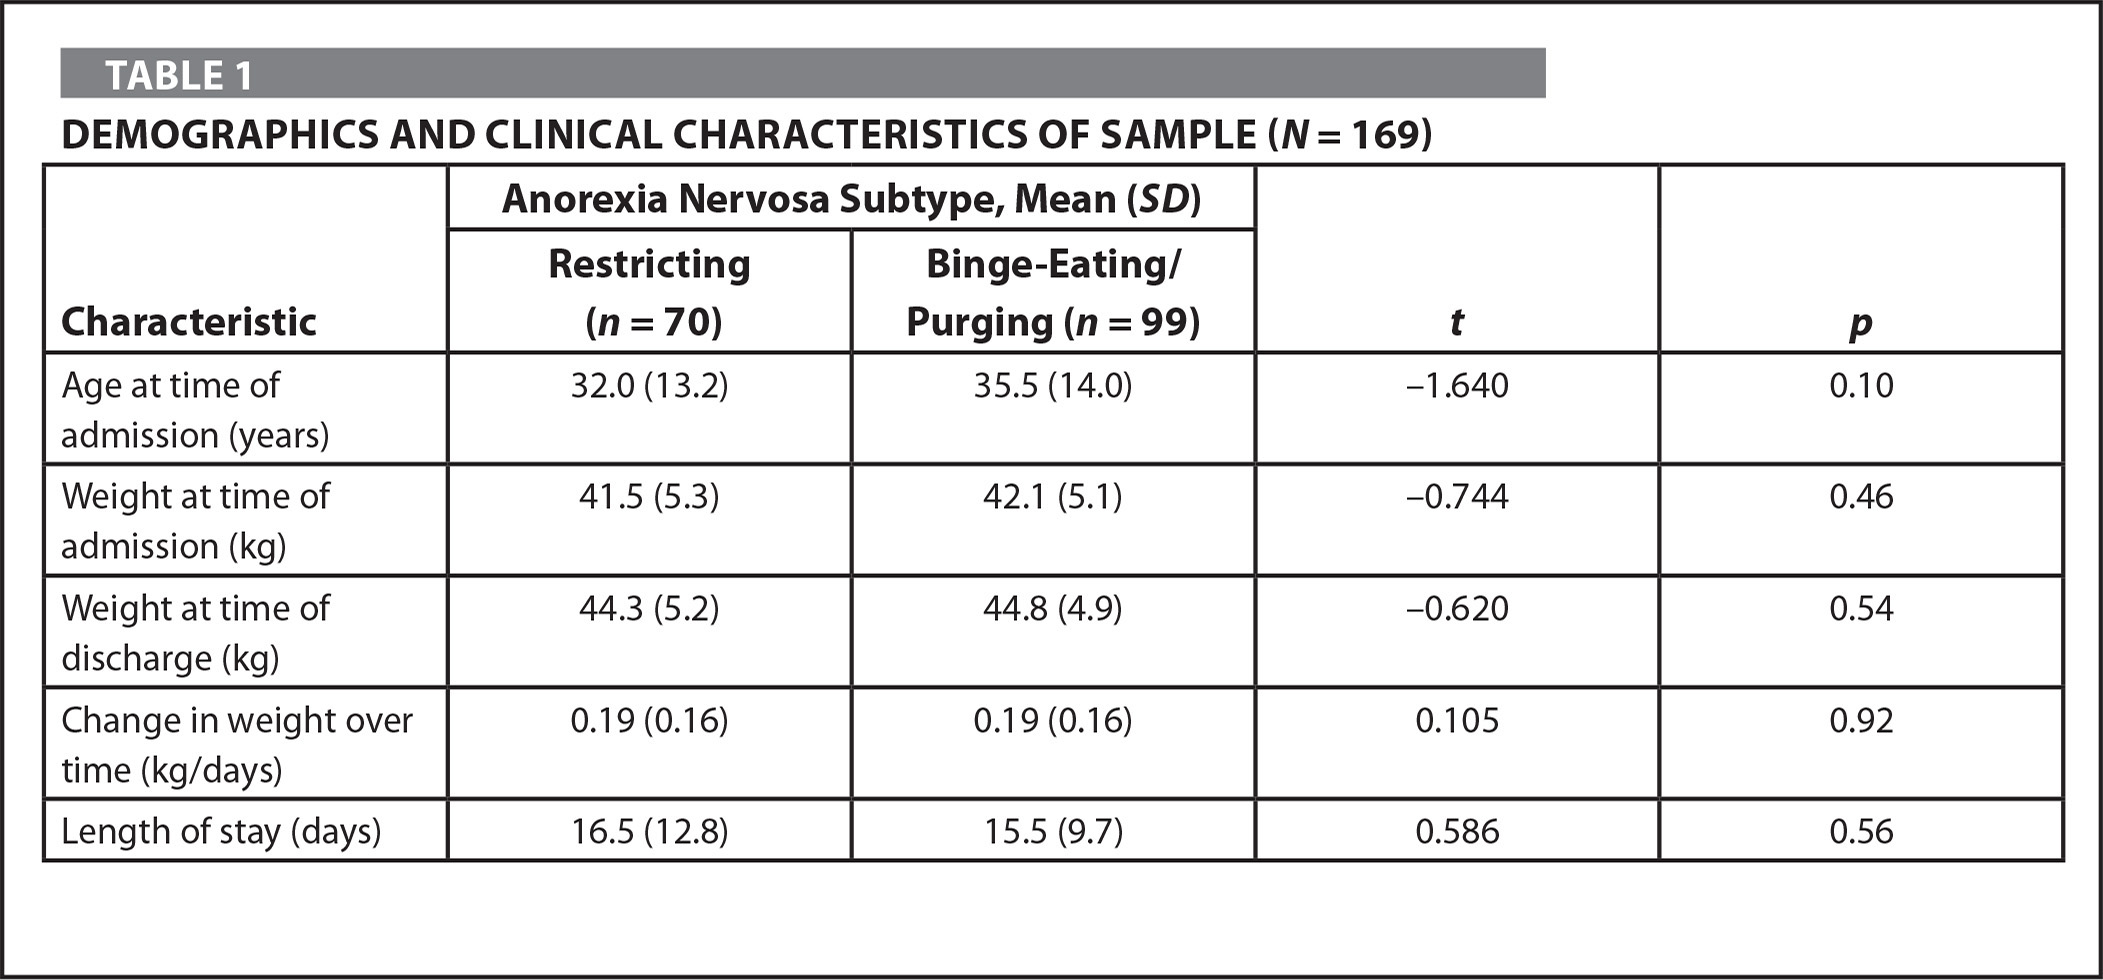 Demographics and Clinical Characteristics of Sample (N = 169)